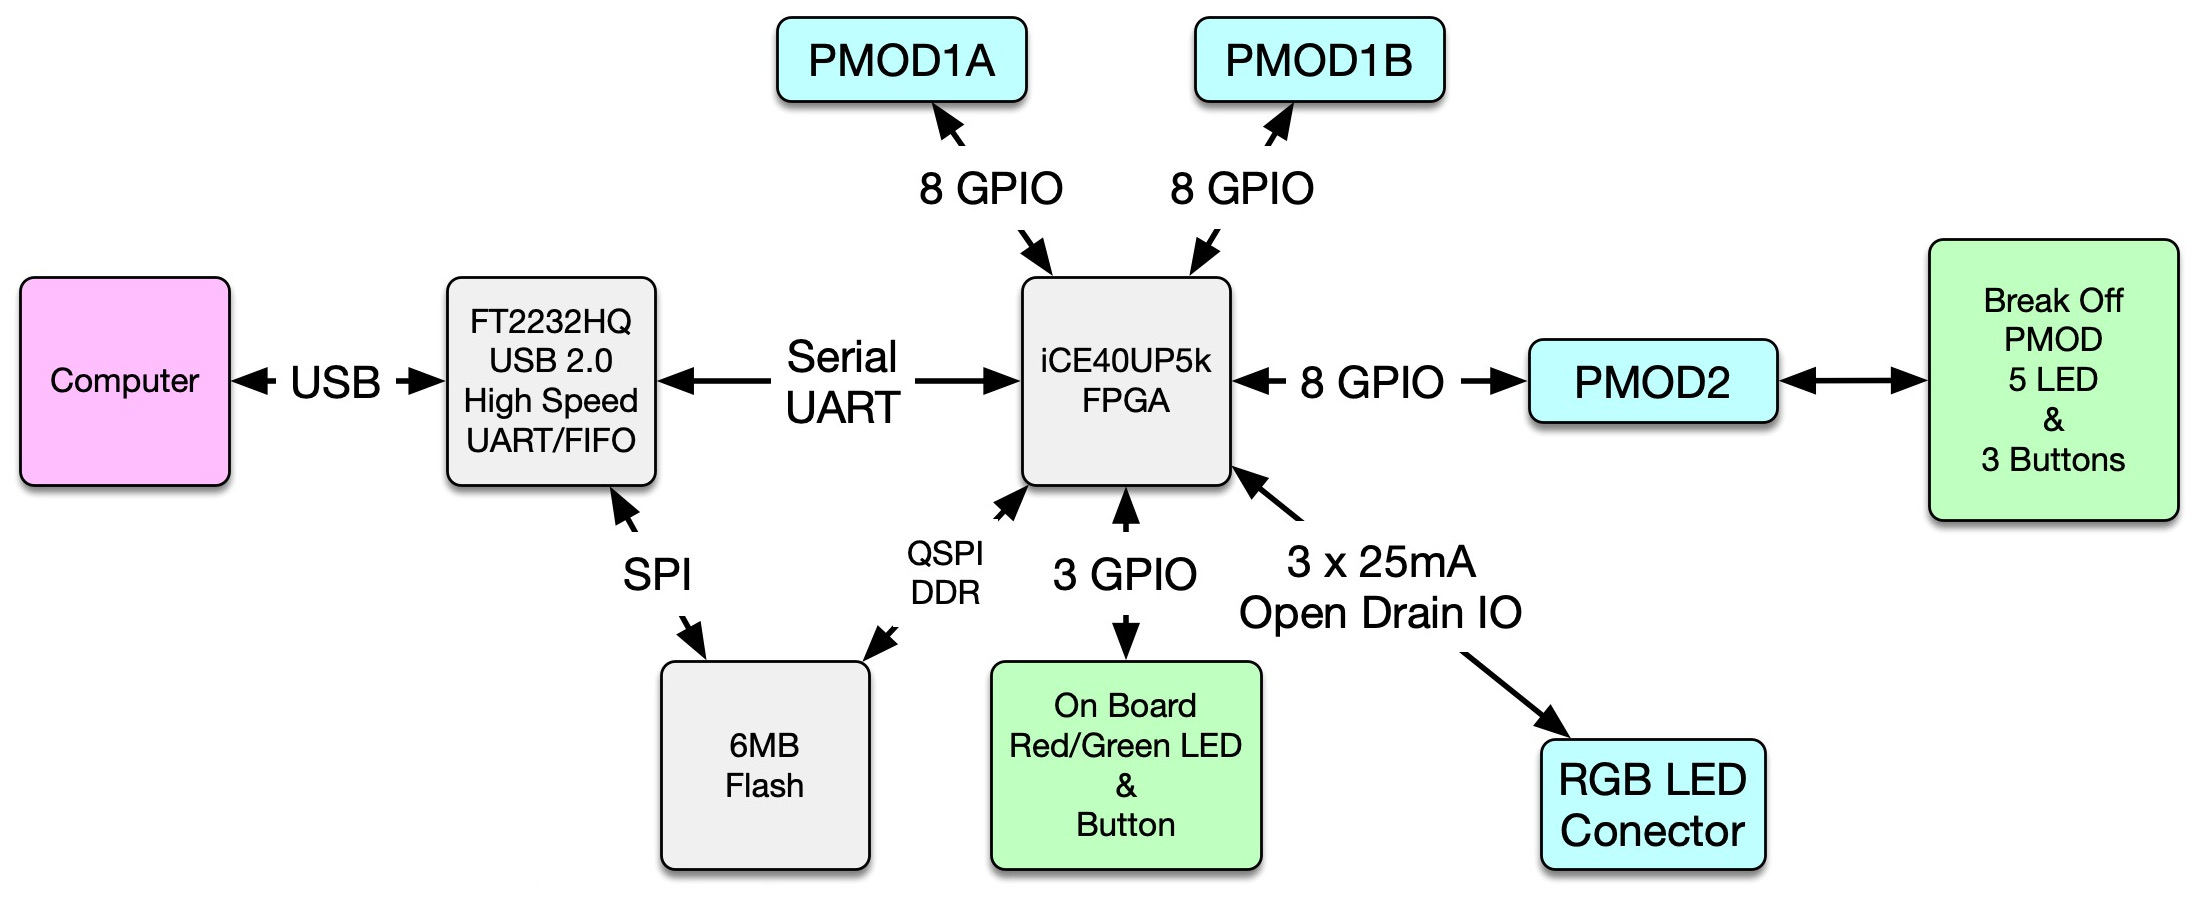 Icebreaker Fpga Crowd Supply Using Block Diagrams And Internal To Model The Physical Functional Diagram